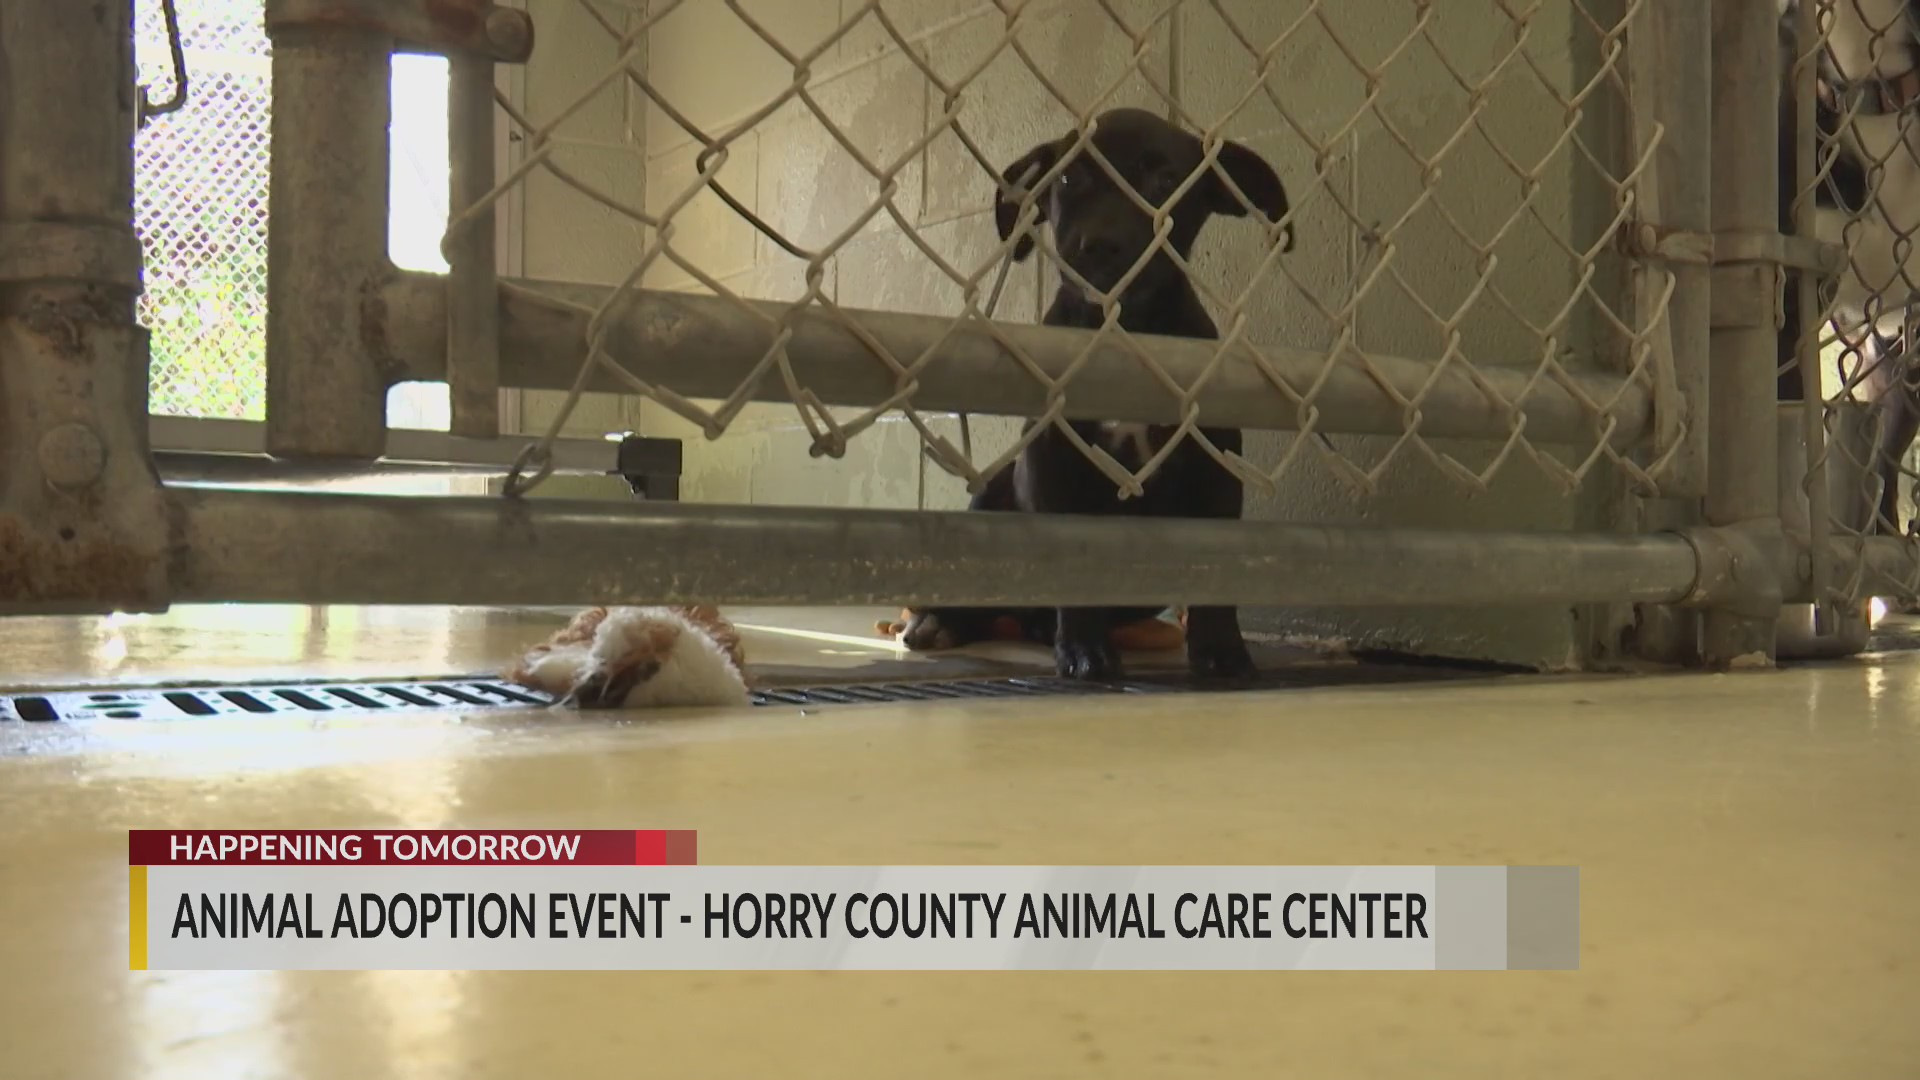 Horry County Animal Care Center to hold adoption event